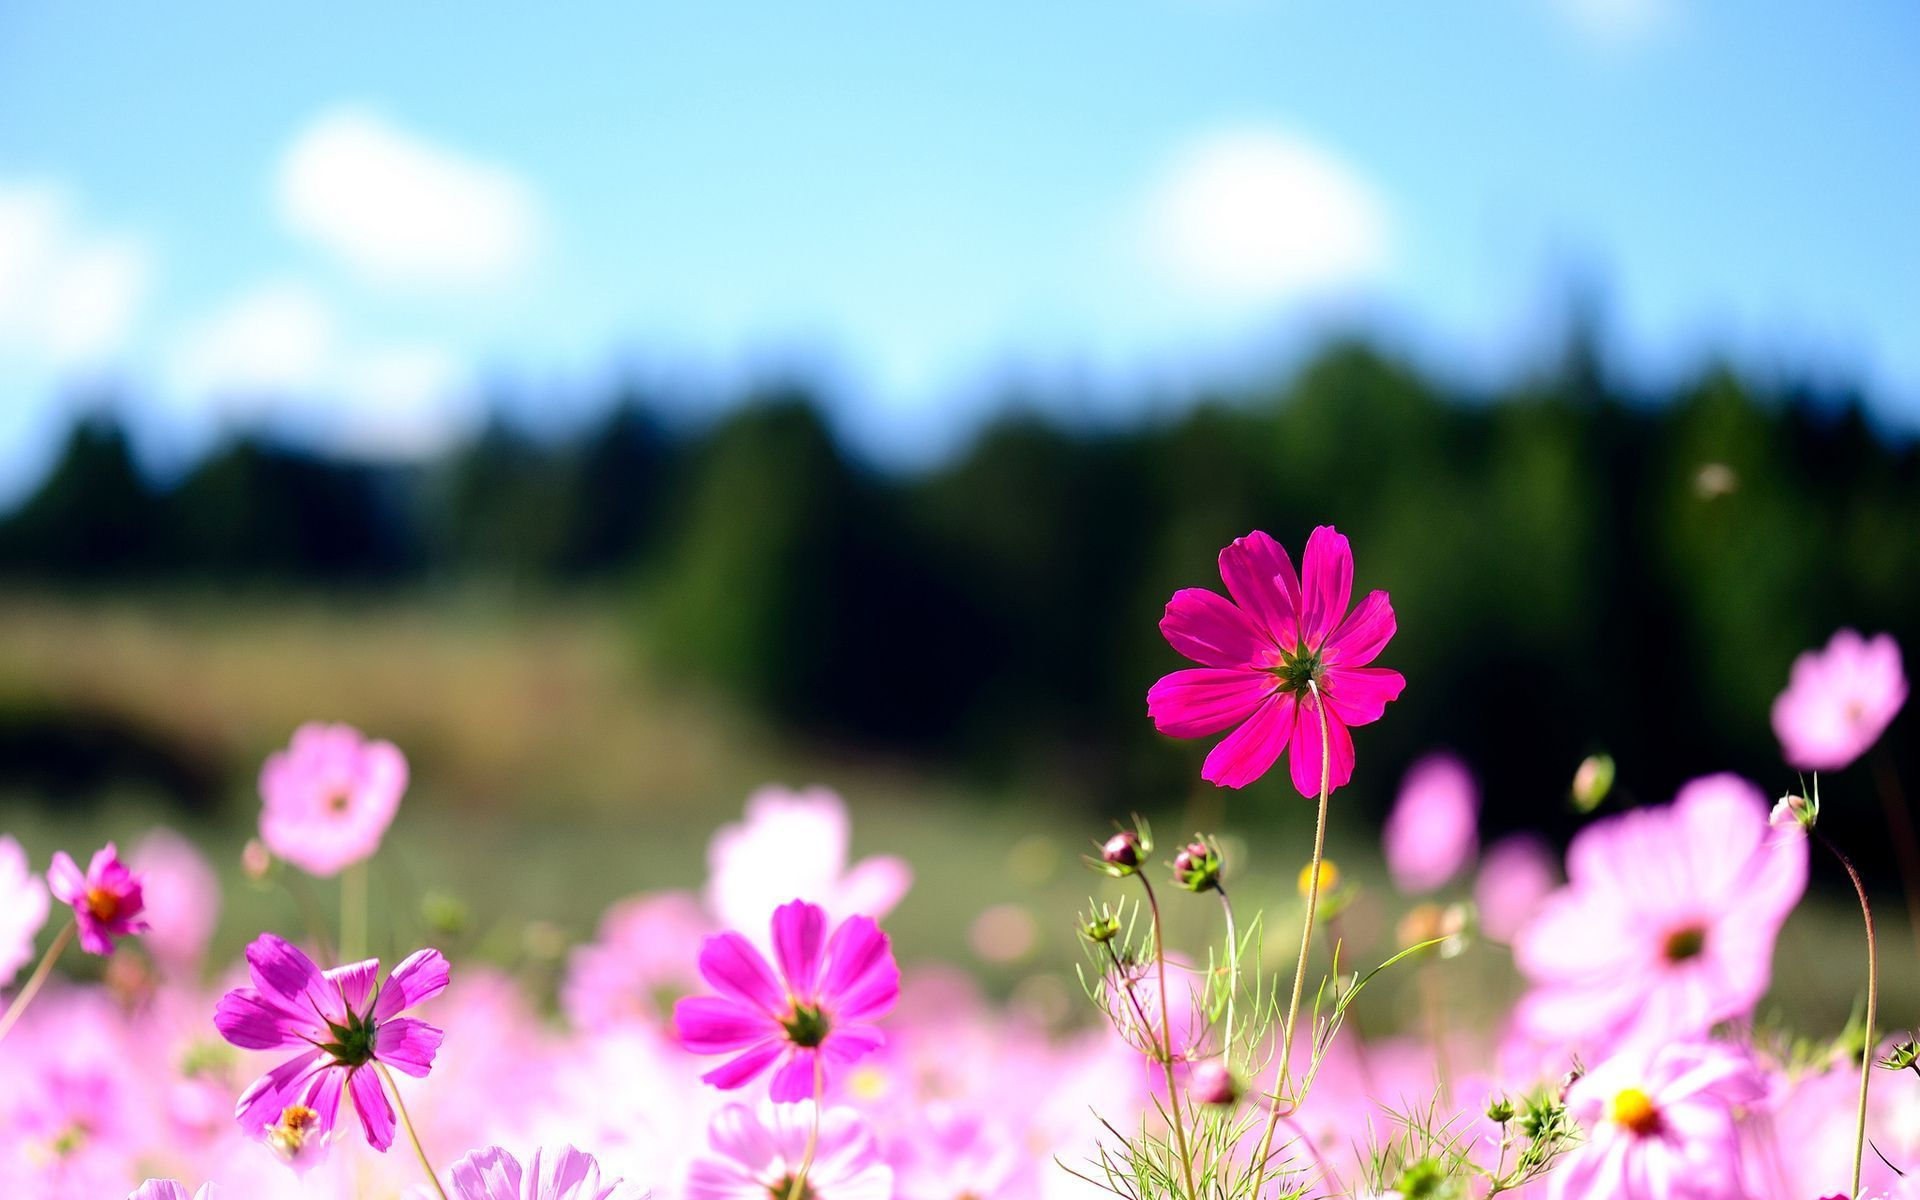 Flower Wallpaper Of Desktop #13246 image pictures | Free Download ...